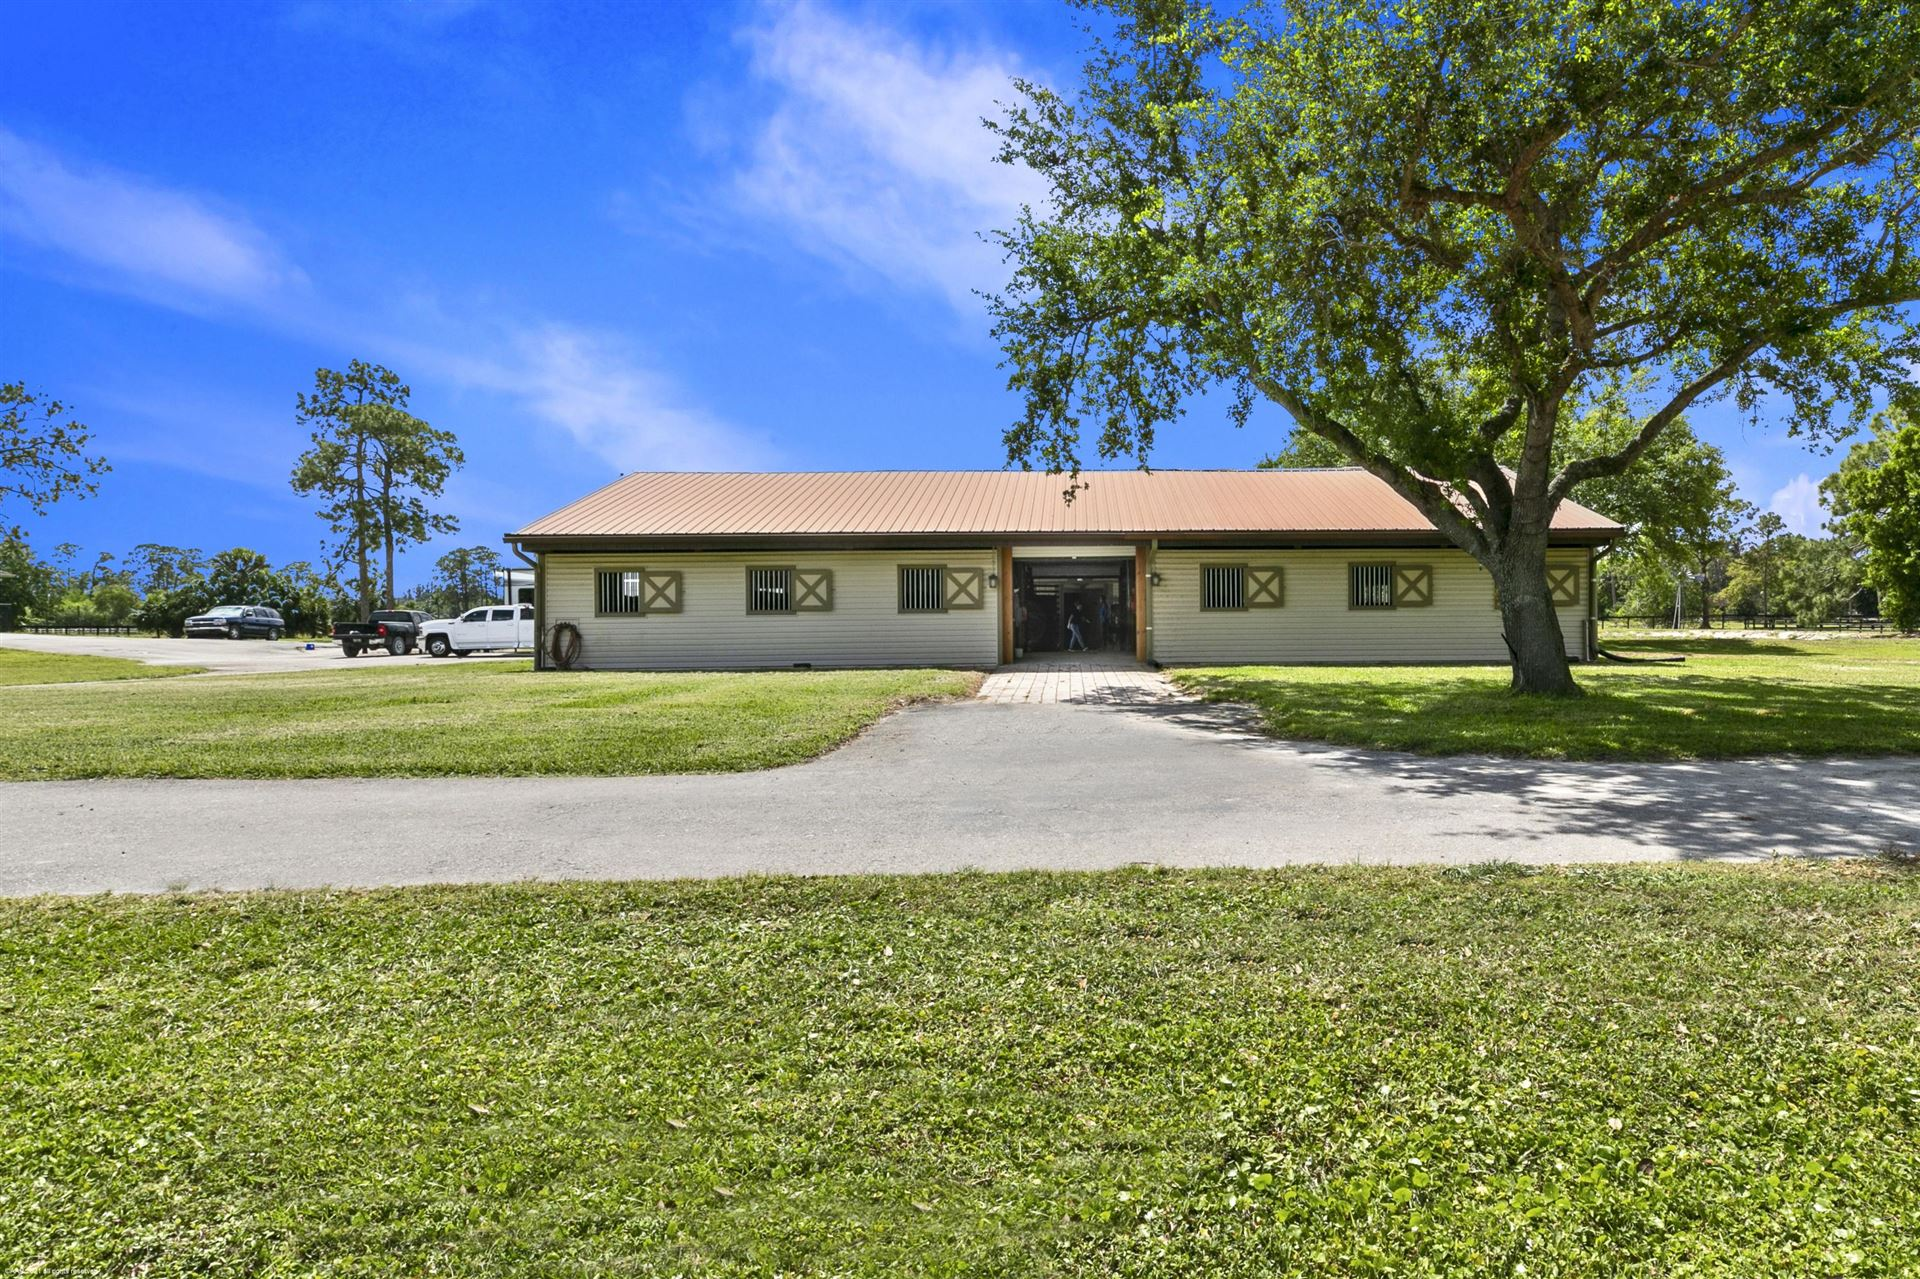 14148 Okeechobee, Loxahatchee Groves, 33470 Photo 1